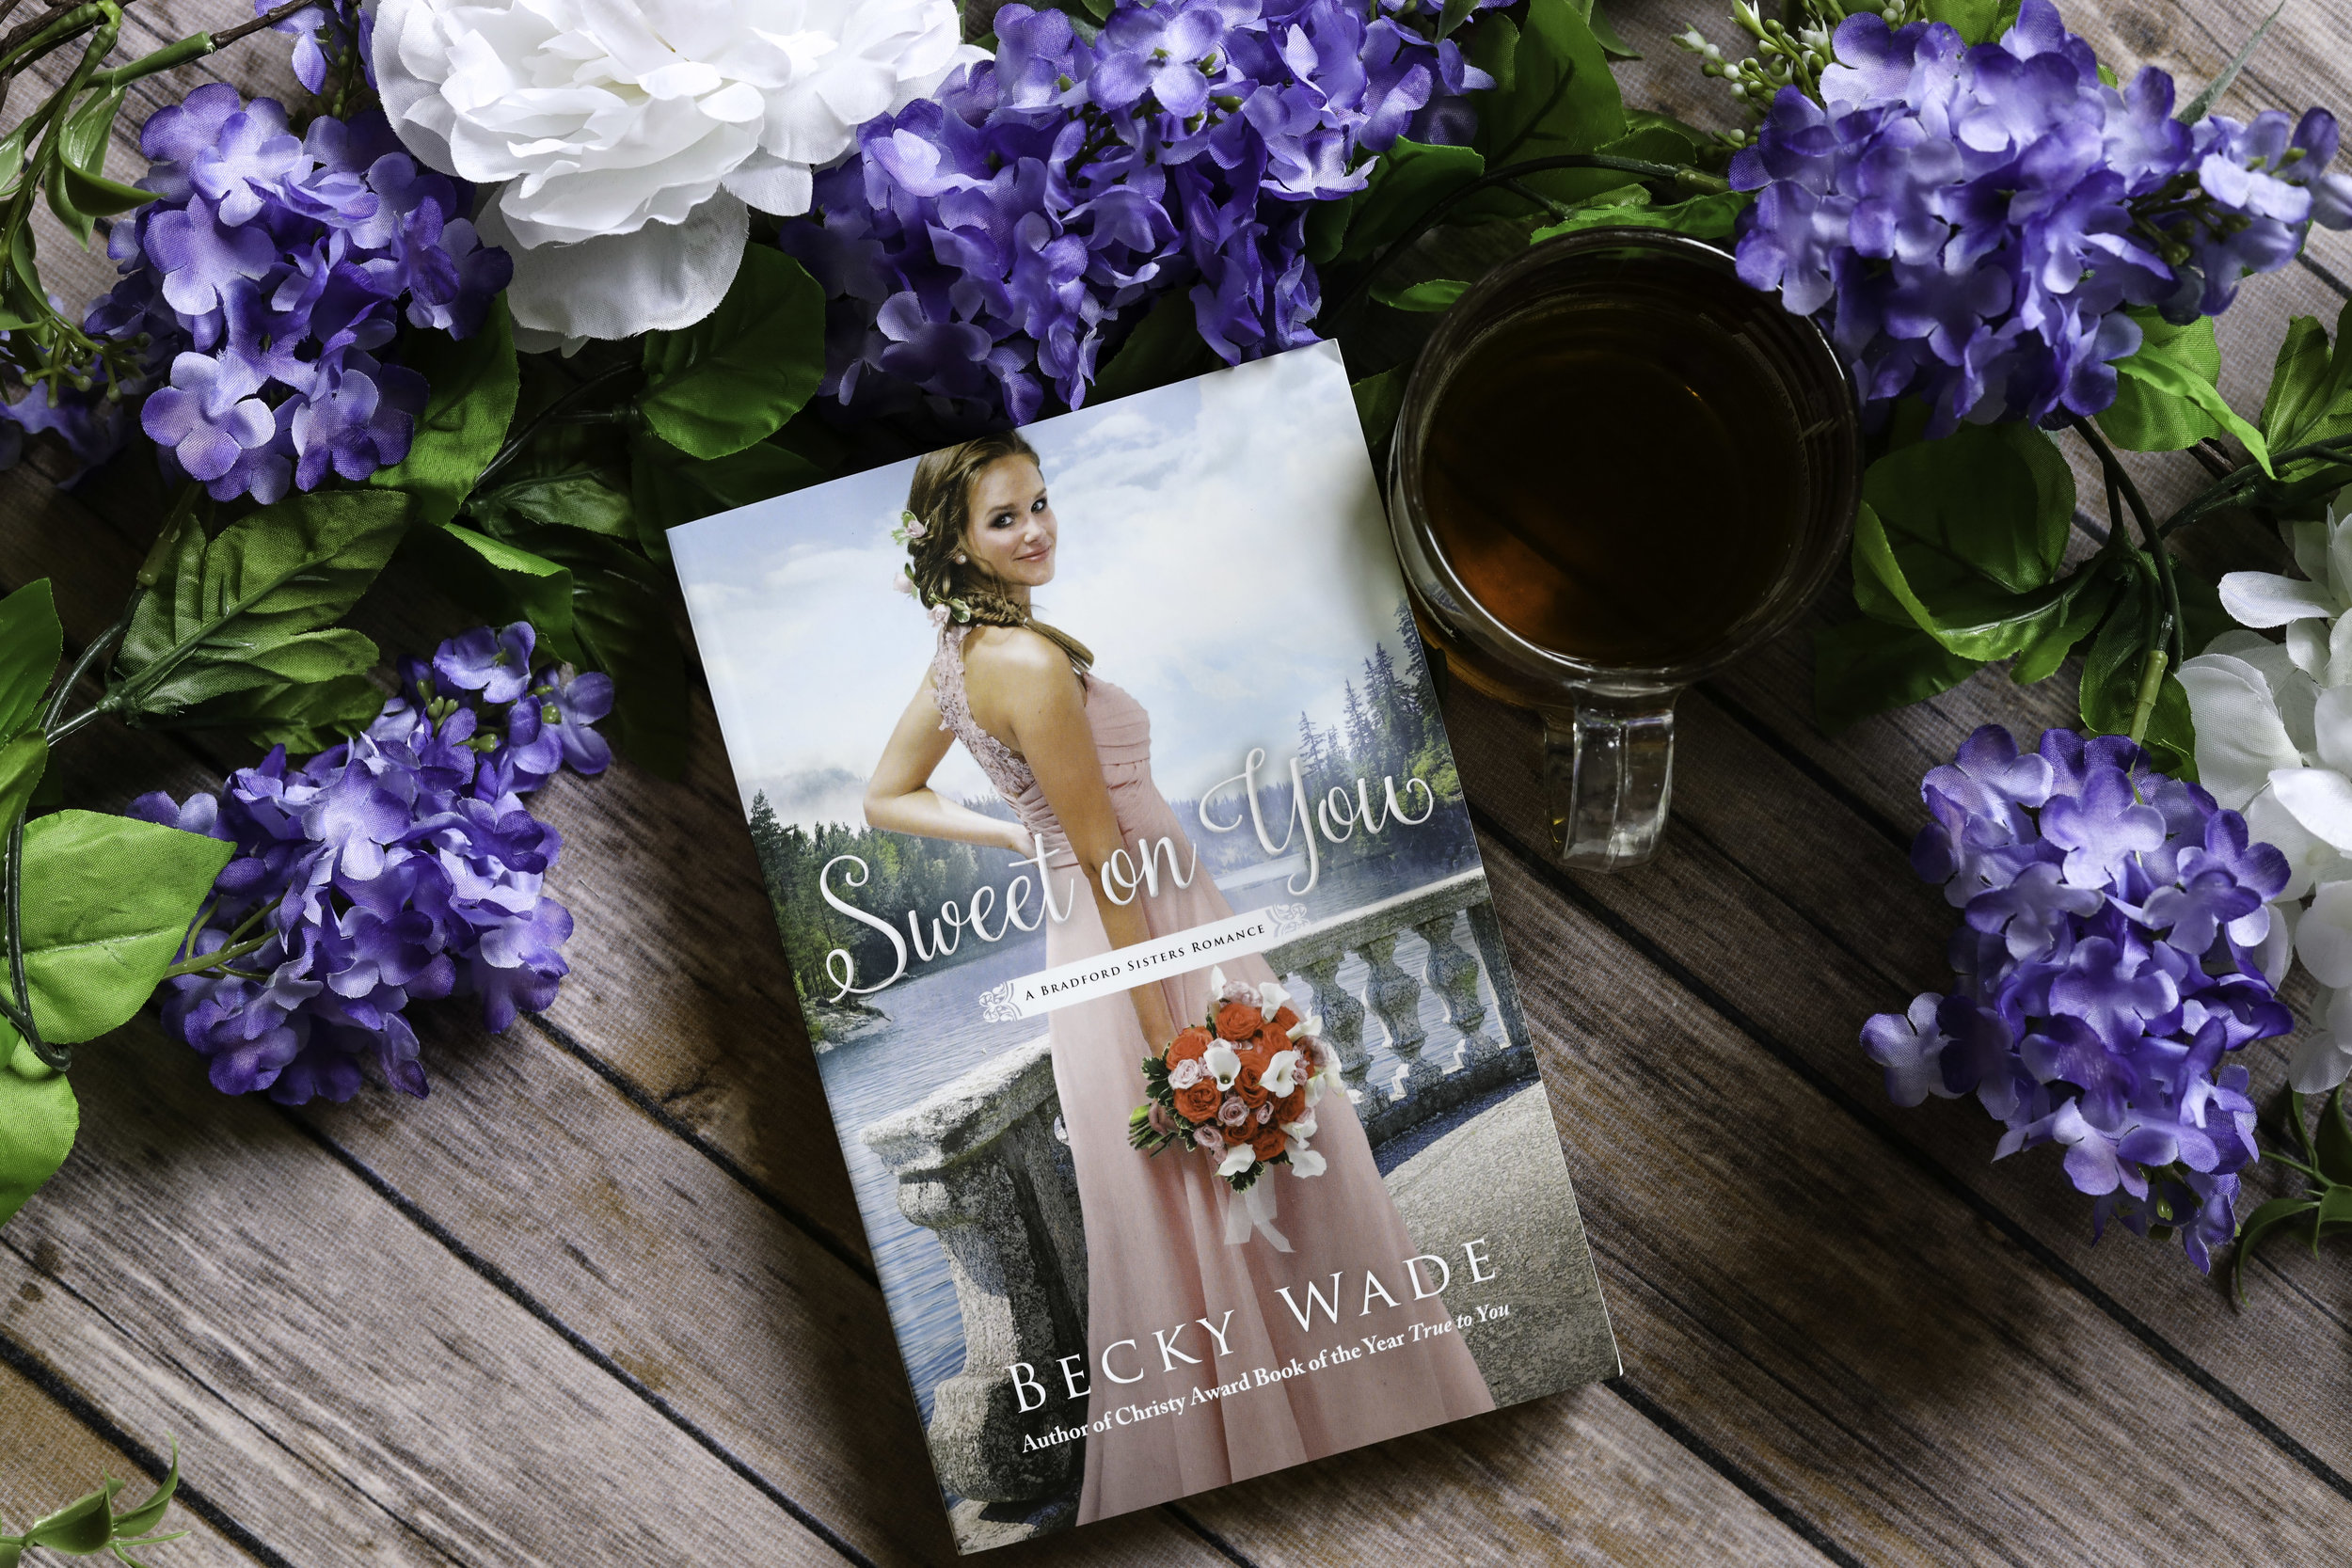 Sweet on you becky wade book review